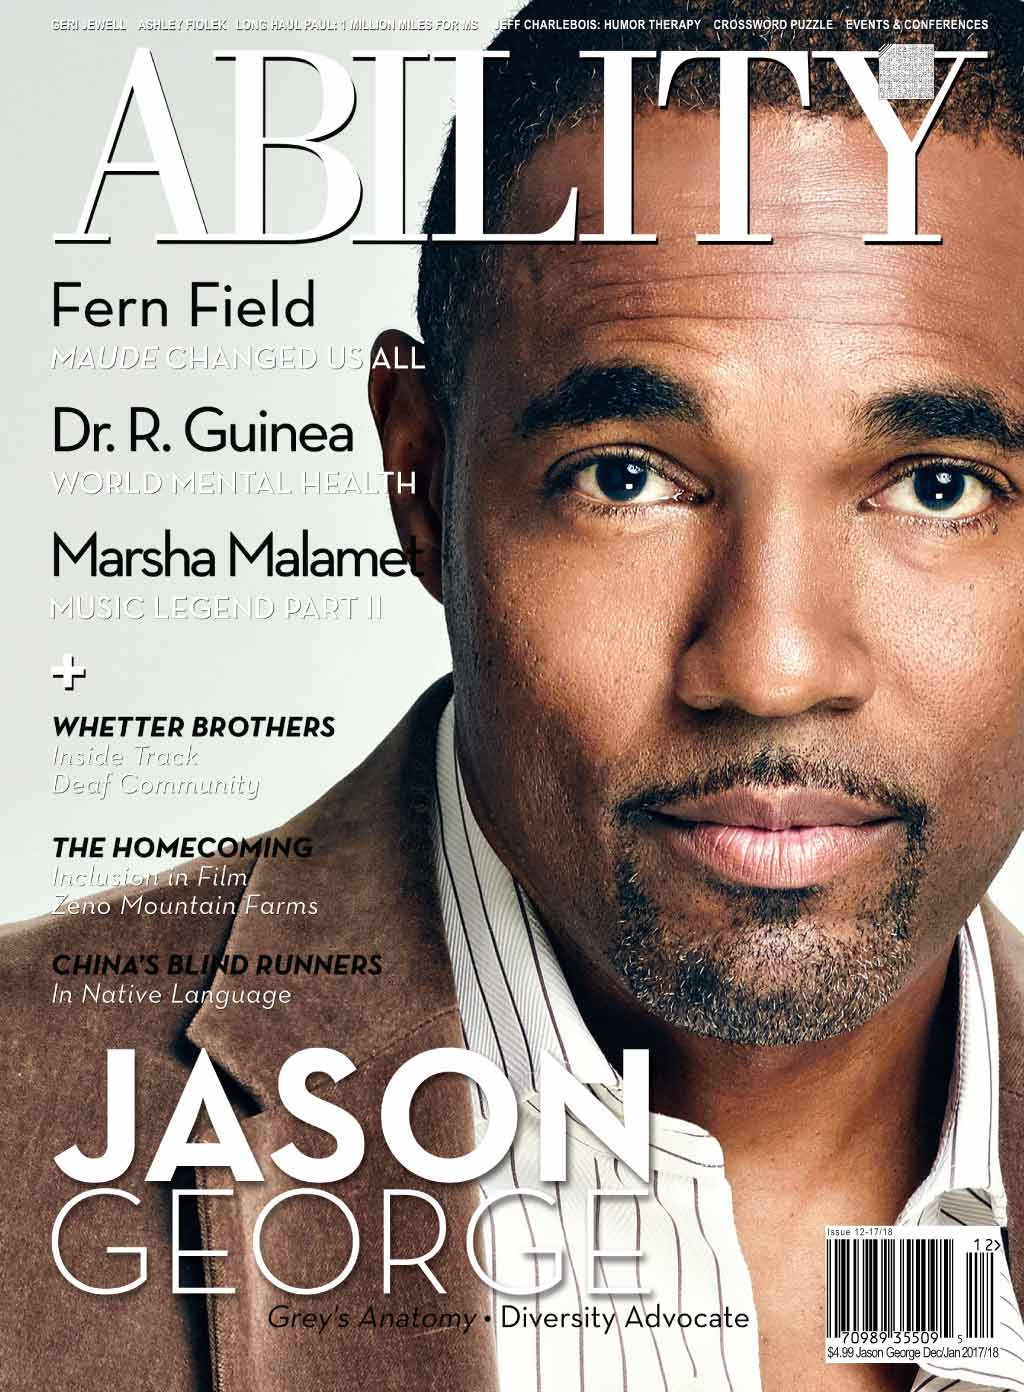 Jason George Issue